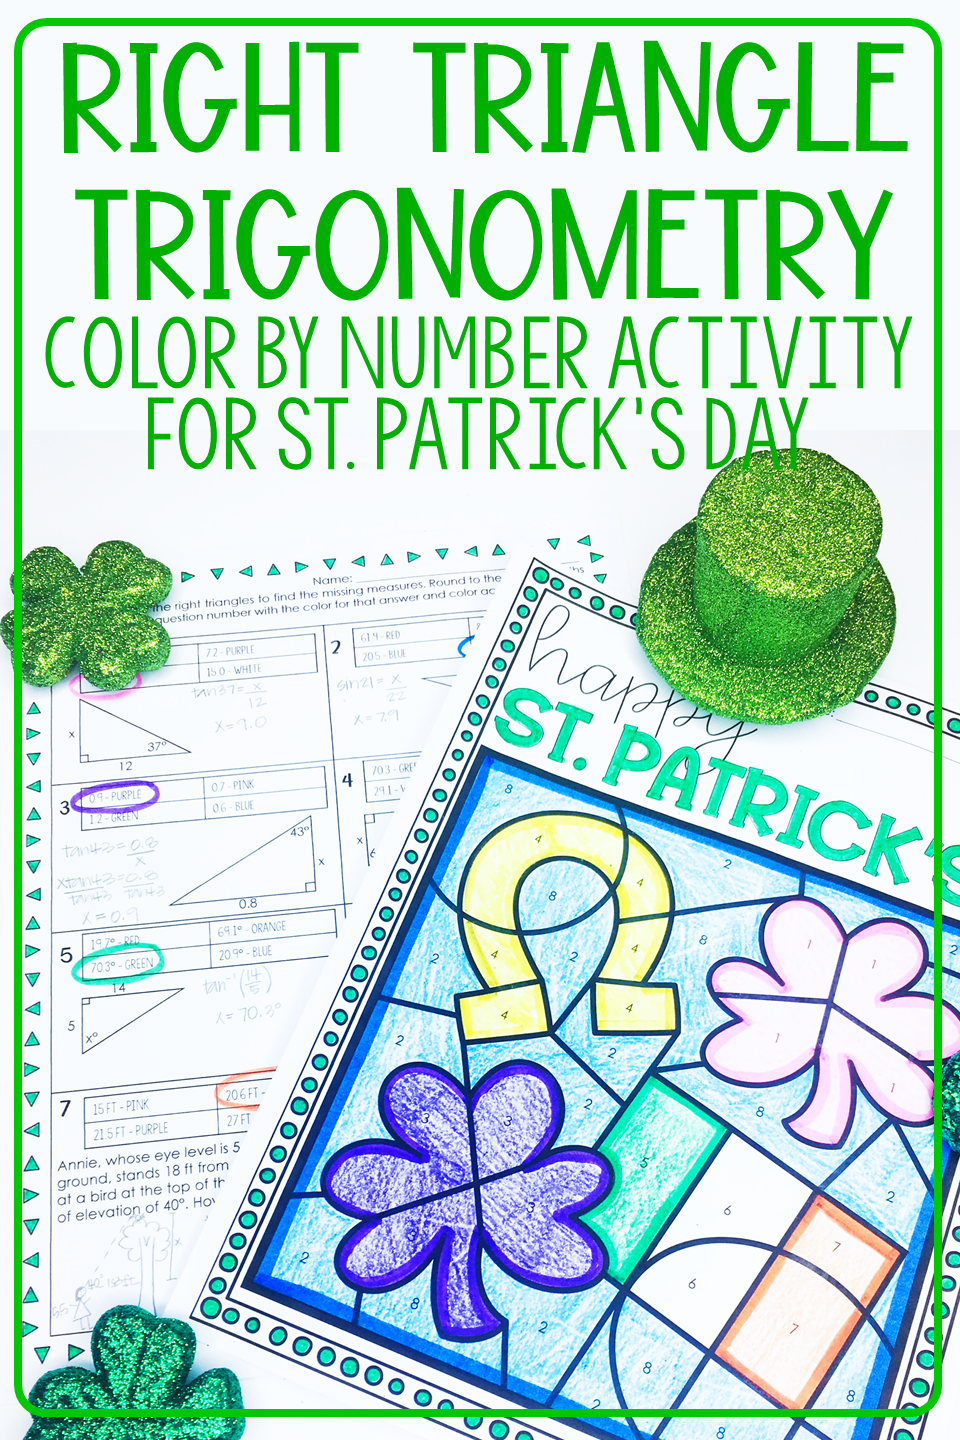 ST. PATRICK'S DAY Geometry   Right Triangle Trig Coloring Activity   Trigonometry  worksheets [ 1440 x 960 Pixel ]